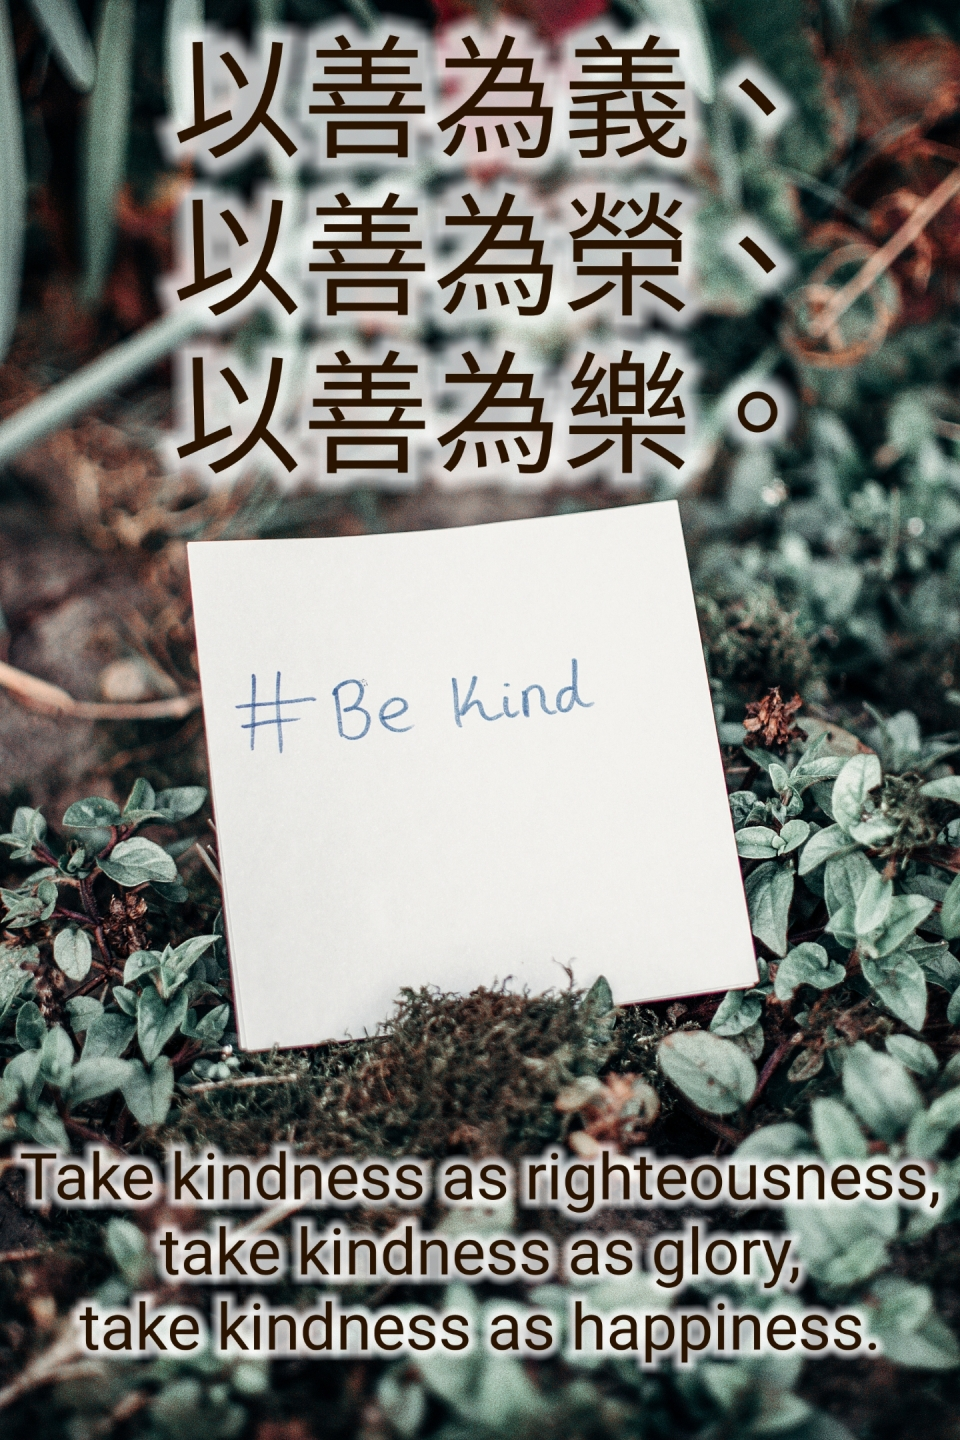 以善為義、以善為榮、以善為樂Take kindness as righteousness, take kindness as glory, take kindness as happiness.向上向善力量的形成需要營造培育與踐行社會善文化的良好氛圍。 文化教化人、培育人、導引人,有社會善文化才能形成社會善力量。 當前社會善文化的培育,首要應培育家庭善文化,形成家教、家風向善力量。 善文化的教化需要從小孩培育起,在小孩的成長過程中應該不斷踐行愛和善,避免形成唯我、自私、利己等心理狀態。 孝文化在現時代要注重人的感恩、關懷、責任、奉獻等品性的培育與弘揚。 在社會善文化建設上,要發揮主流文化的核心導引力,形成以善為義、以善為榮、以善為樂的價值導引體系。 從民眾善的心理—情感的覺悟培育起,自律、愛人、利人,推己及人,喚起良知、呵護良知。 其中,汲取弘揚中華傳統善文化精華,對培育多民族善文化的自覺與認同至關重要。 由善的心理—情感至善文化、文明,再到善的行為、善的價值的認同與踐行,最終形成社會善文化價值實踐的整體氛圍。 要充分發揮文化傳播導引力。 在戲曲、影視、文藝創作等方面,將傳播真善美合一的正能量作為創作的立足點。 在媒體融合發展的環境下,將善文化作為底色,形成共傳、共贊善人、善事、善情的輿論氛圍。 政府的大力倡導、民眾的共同參與、輿論的共同彰顯才能形成向上向善力量的聚氣合力,將中華千年百代的善文化在新全球時代發揚光大。The formation of the upward force for kind needs to create a kindness atmosphere for cultivating and practicing social kind culture.  Culture instructs people, nurtures people, and guides people. Only a social kind culture can form social kindness forces.  The cultivation of the current social kindness culture should firstly cultivate the family kind culture and form the power of family education and family tradition to promote kindness.  The cultivation of kind culture needs to start with the cultivation of children, and they should constantly practice love and kindness during the growth of children to avoid the formation of solipsism, selfishness, and self-interest.  The culture of filial piety should pay attention to the cultivation and promotion of people's attributes such as gratitude, care, responsibility, and dedication.  In the construction of social kindness culture, it is necessary to give play to the core guiding force of mainstream culture, and form a value guiding system in which kindness is righteous, kindness is proud, and kindness is happy.  Starting from the people's benevolent psychology-emotional awareness, self-discipline, love and benefit, promote oneself and others, arouse conscience and protect conscience.  Among them, absorbing and promoting the essence of Chinese traditional kindness culture is essential to cultivate the consciousness and identity of the national kindness culture.  From the psychology of kindness—emotion to kind culture and civilization, then to the recognition and practice of good behavior and good value, the overall atmosphere of social kindness cultural value practice is finally formed.  It is necessary to give full play to the guiding force of cultural communication.  In opera, film and television, literary and artistic creation, etc., spread the positive energy of the unity of truth, kindness and beauty as the foothold of creation.  In the environment of the integration and development of the media, the culture of kindness is used as the background color to form a public opinion atmosphere of sharing, praising good people, good deeds, and good sentiments.  The government's vigorous advocacy, the common participation of the people, and the common manifestation of public opinion can form a cohesive force of upward force for good, and carry forward the thousands years of Chinese kindness culture in the new global era.????Kindness Culture☮️People Relations⚛️ Quantum Wisdom????仁義兼善天下????RENYI.us???? 性善文化l⼈際關係l量子智慧